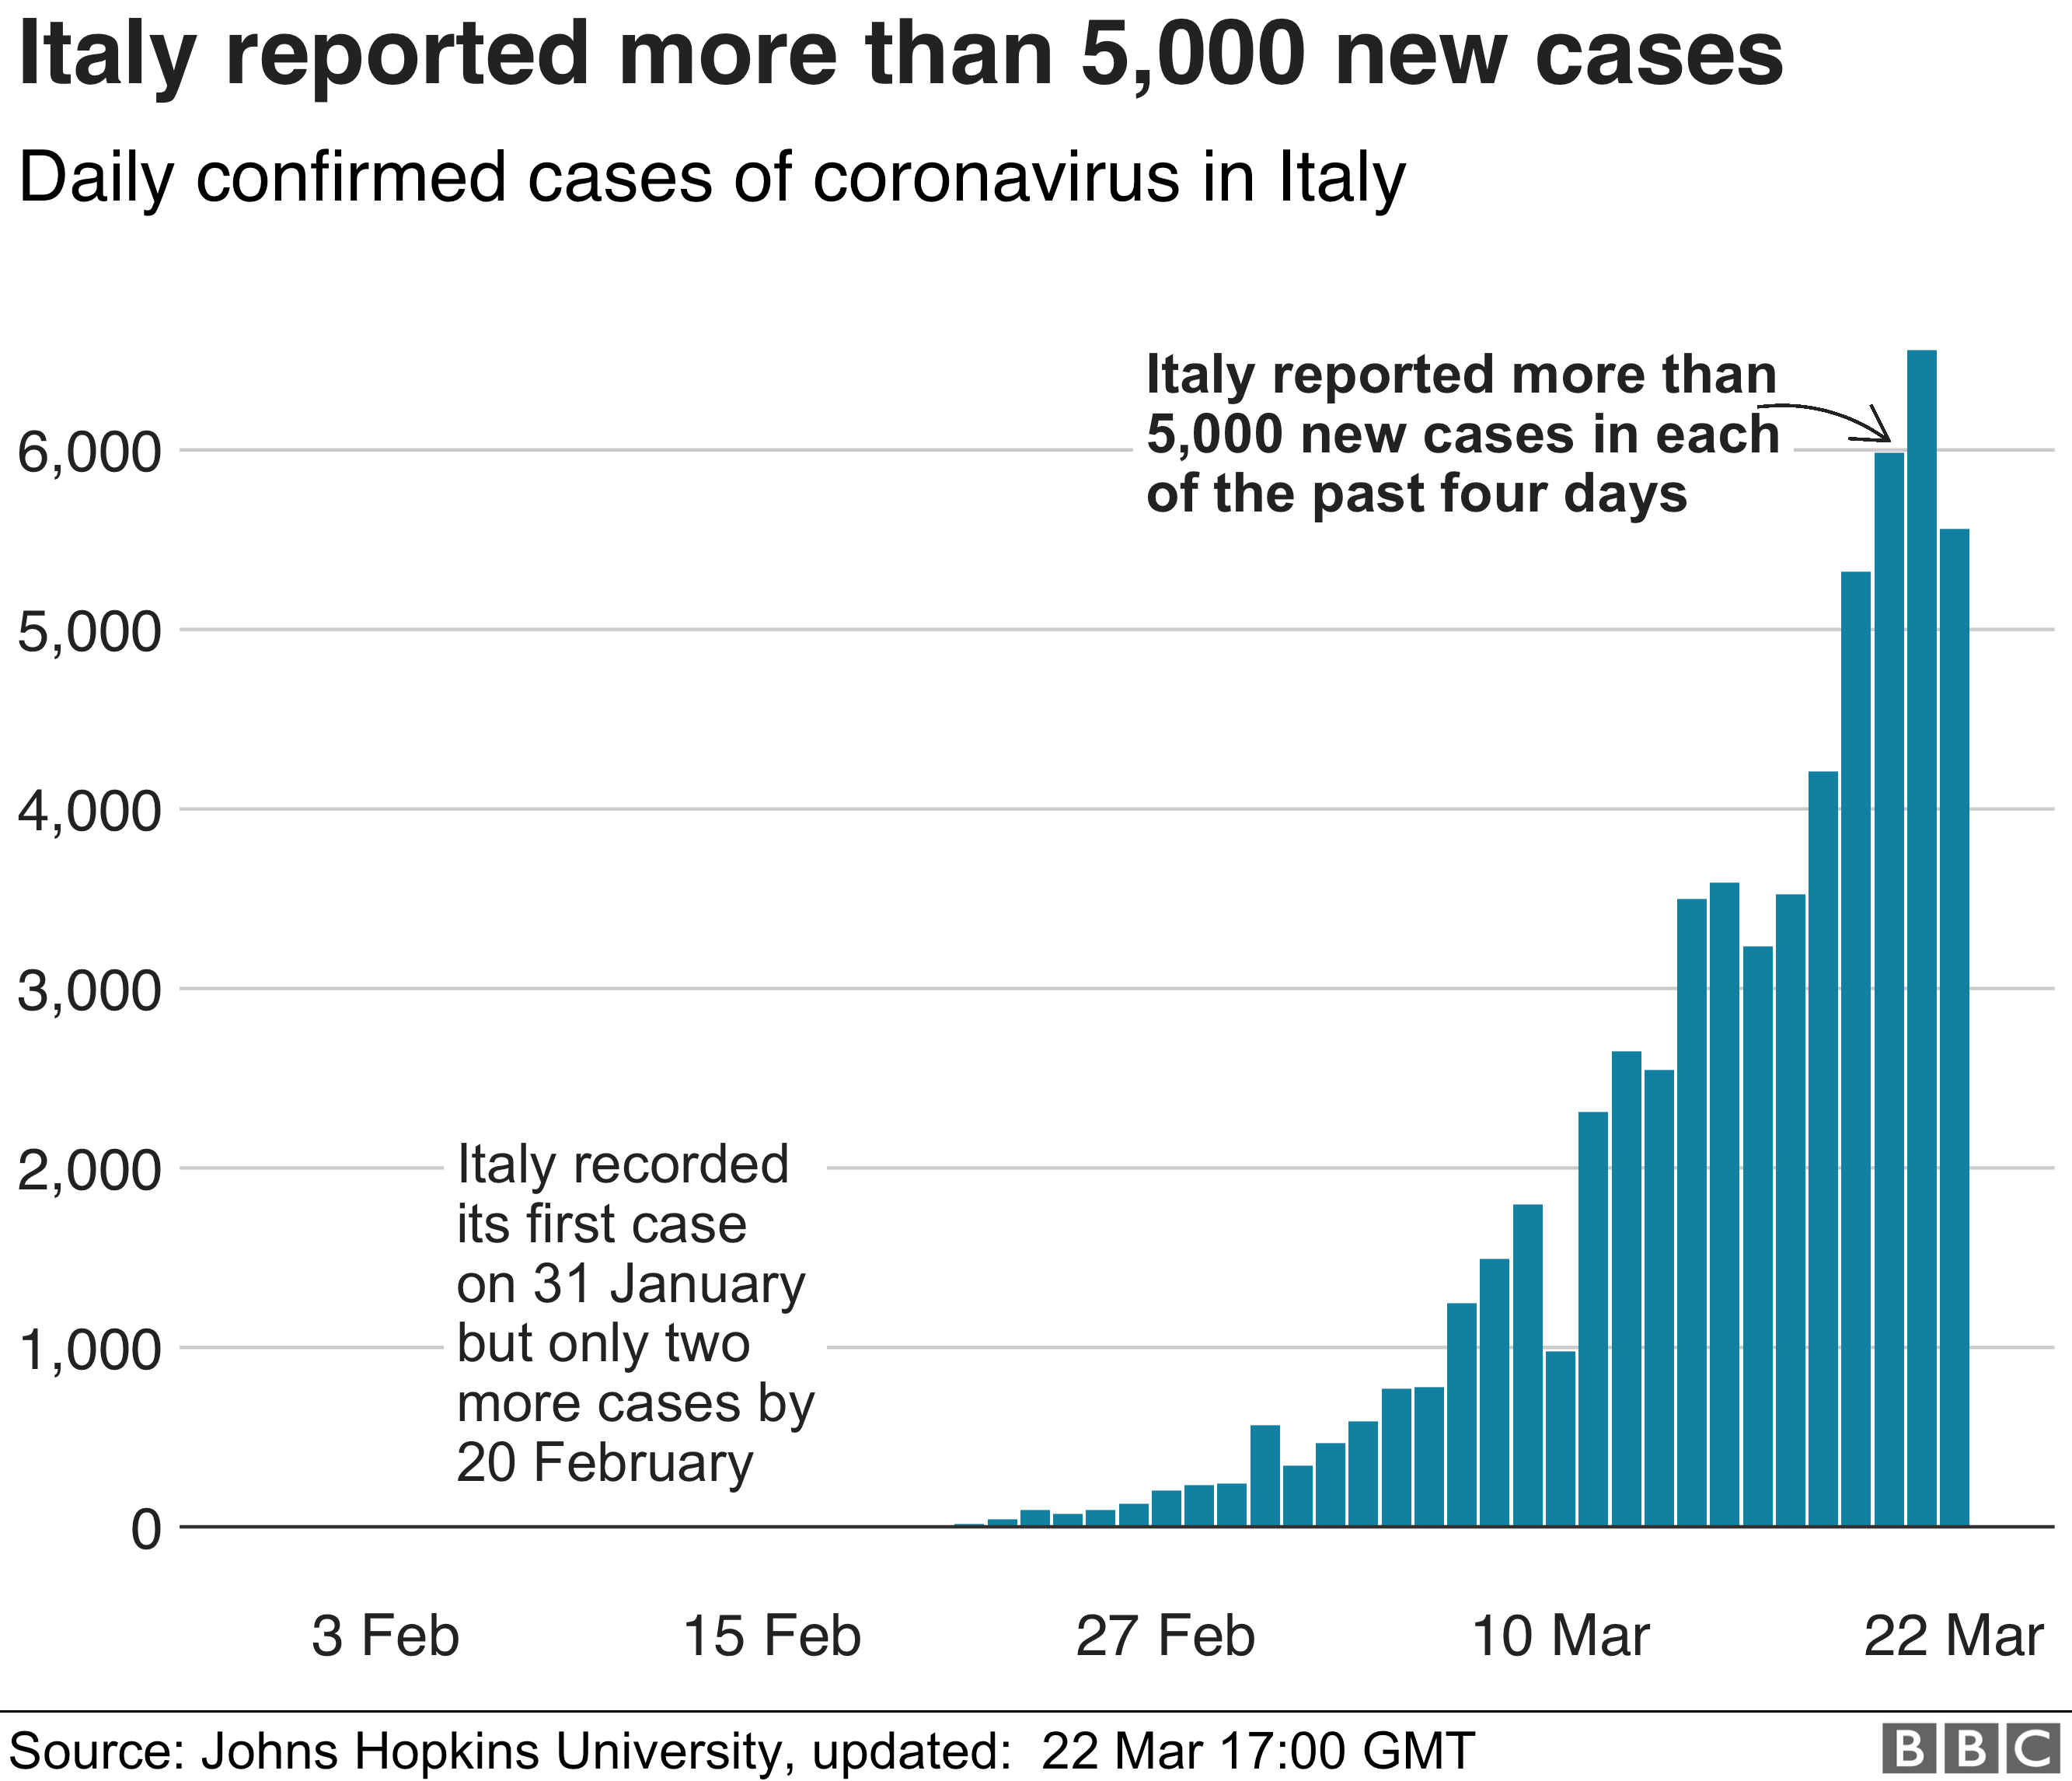 Bar chart reporting more than 5000 new cases